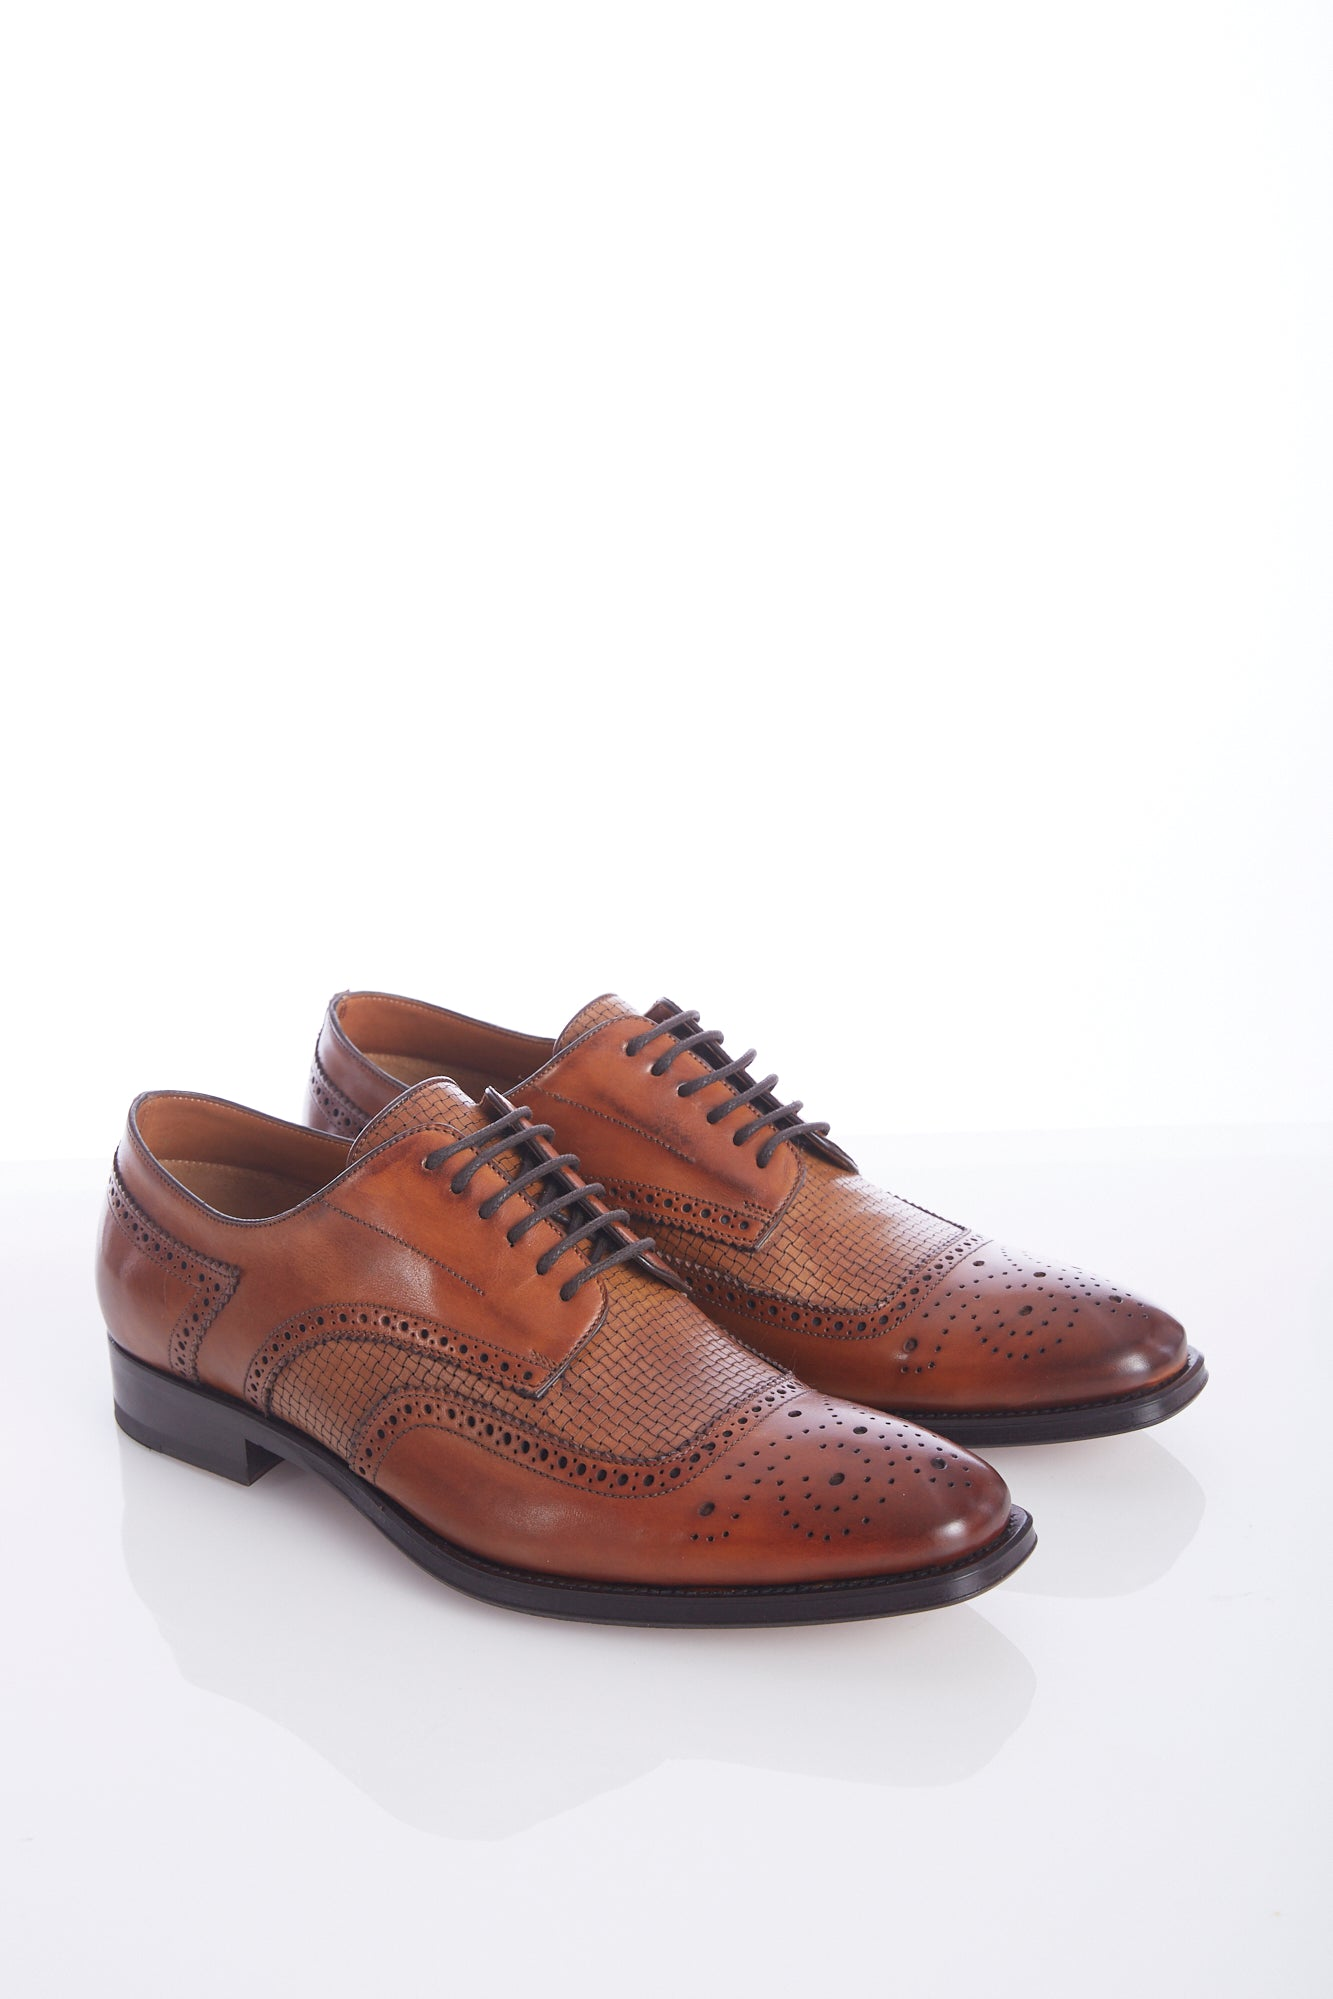 Giulio Moretti Brown Braided U-Wing Shoes